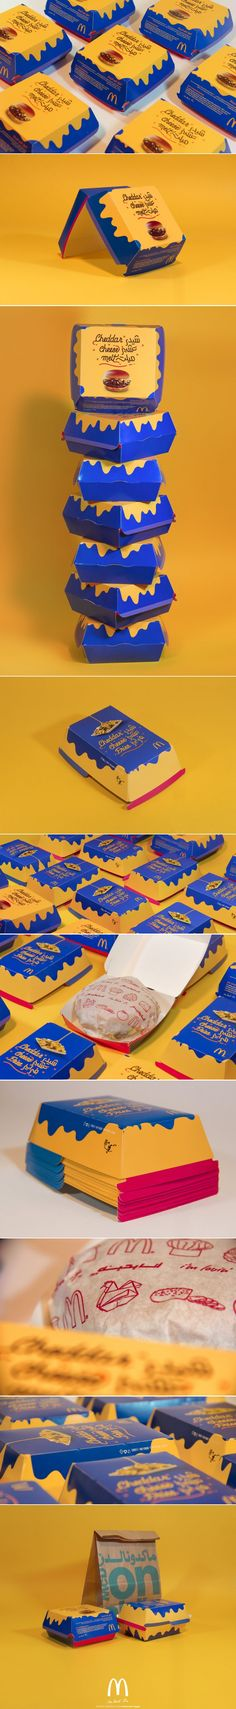 Check Out This Fun Packaging for McDonald's Egypt — The Dieline | Packaging & Branding Design & Innovation News